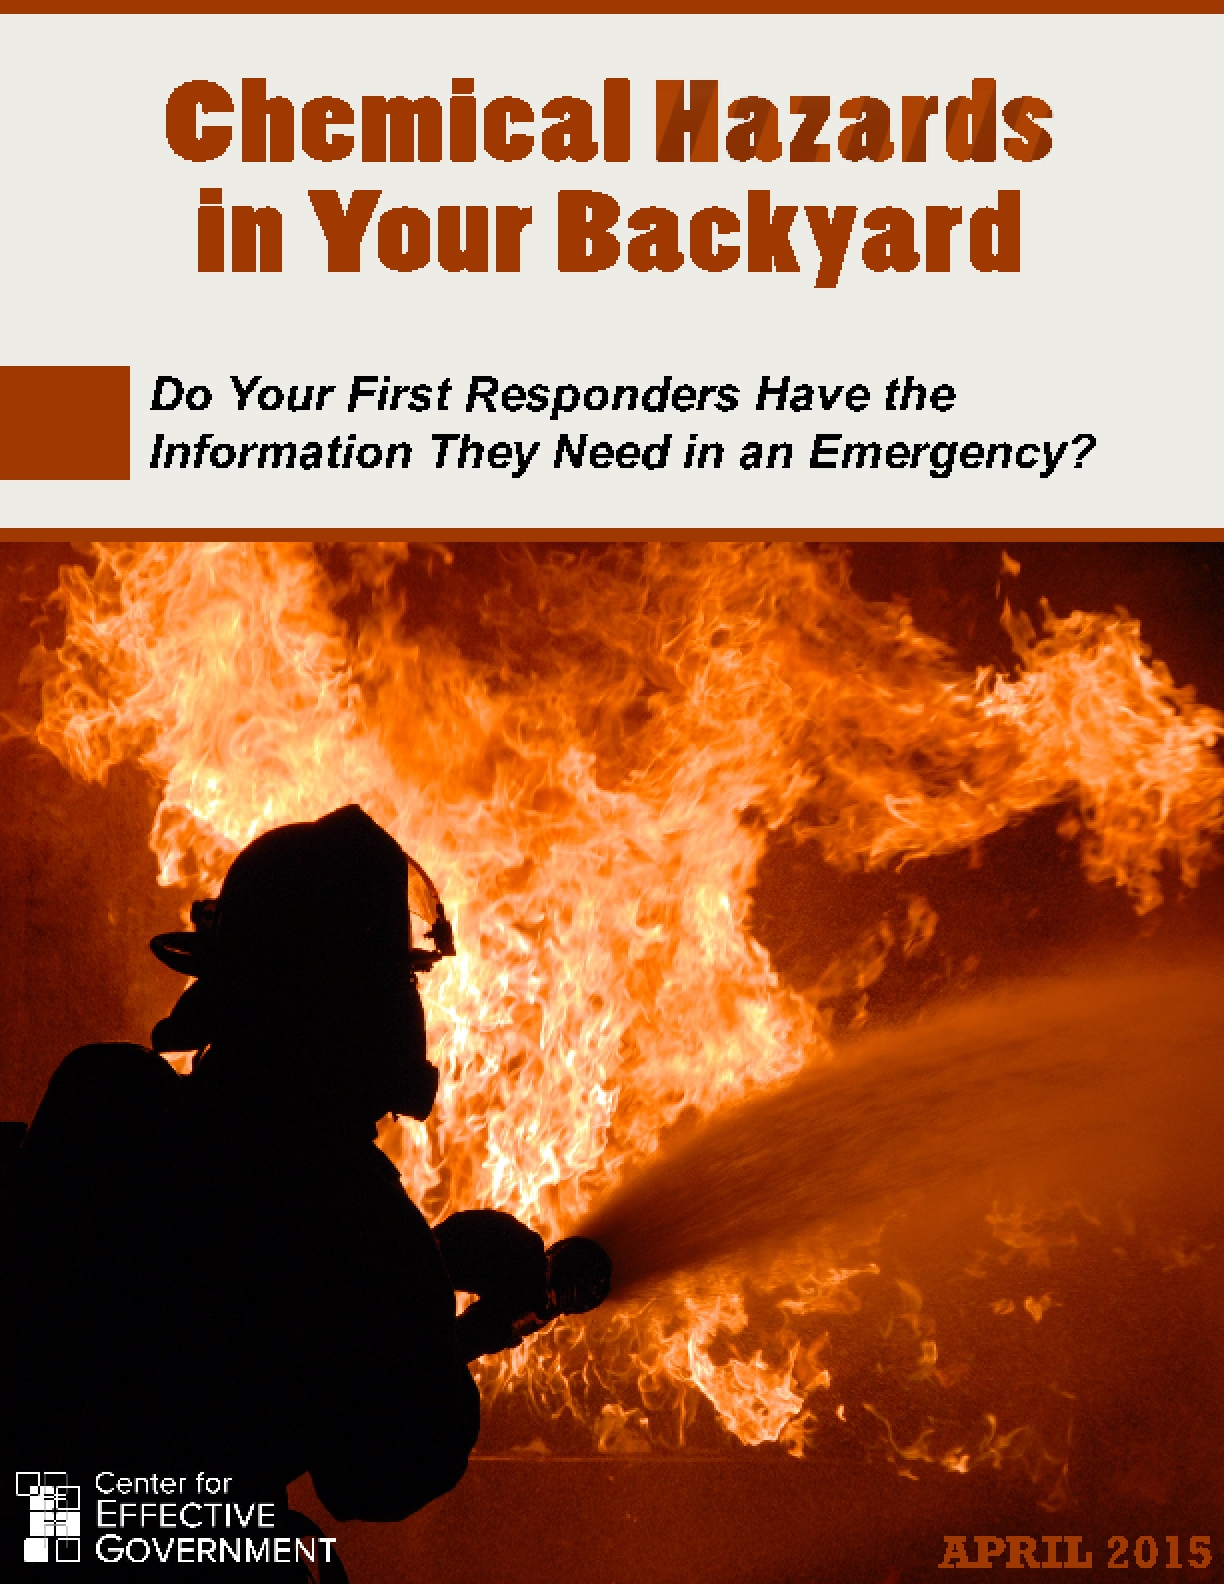 Chemical Hazards in Your Backyard: Do Your First Responders Have the Information They Need in an Emergency?